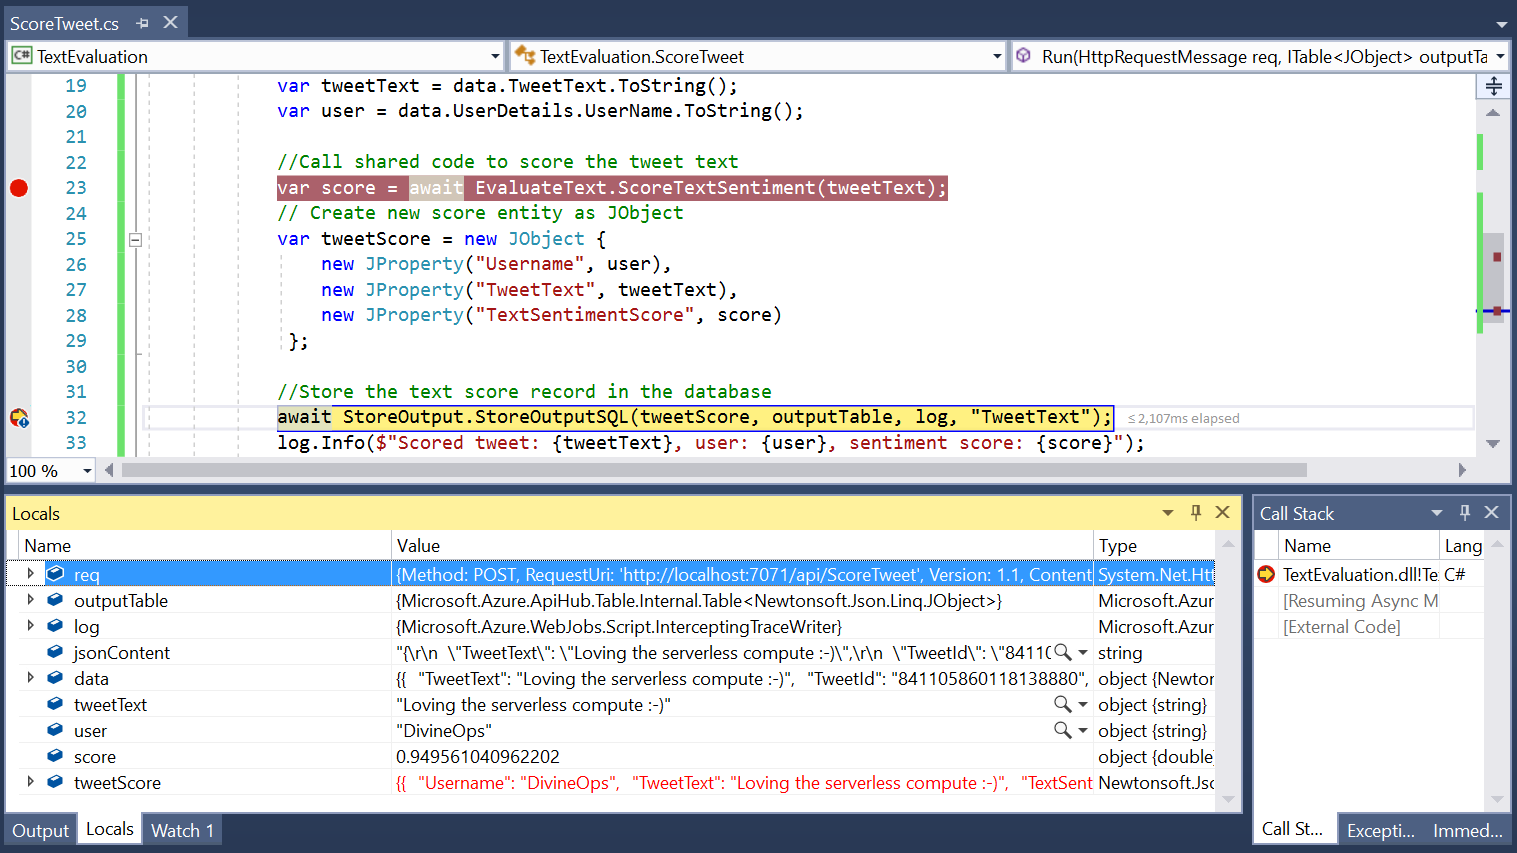 Debugging functions with Visual Studio - Serverless computing in